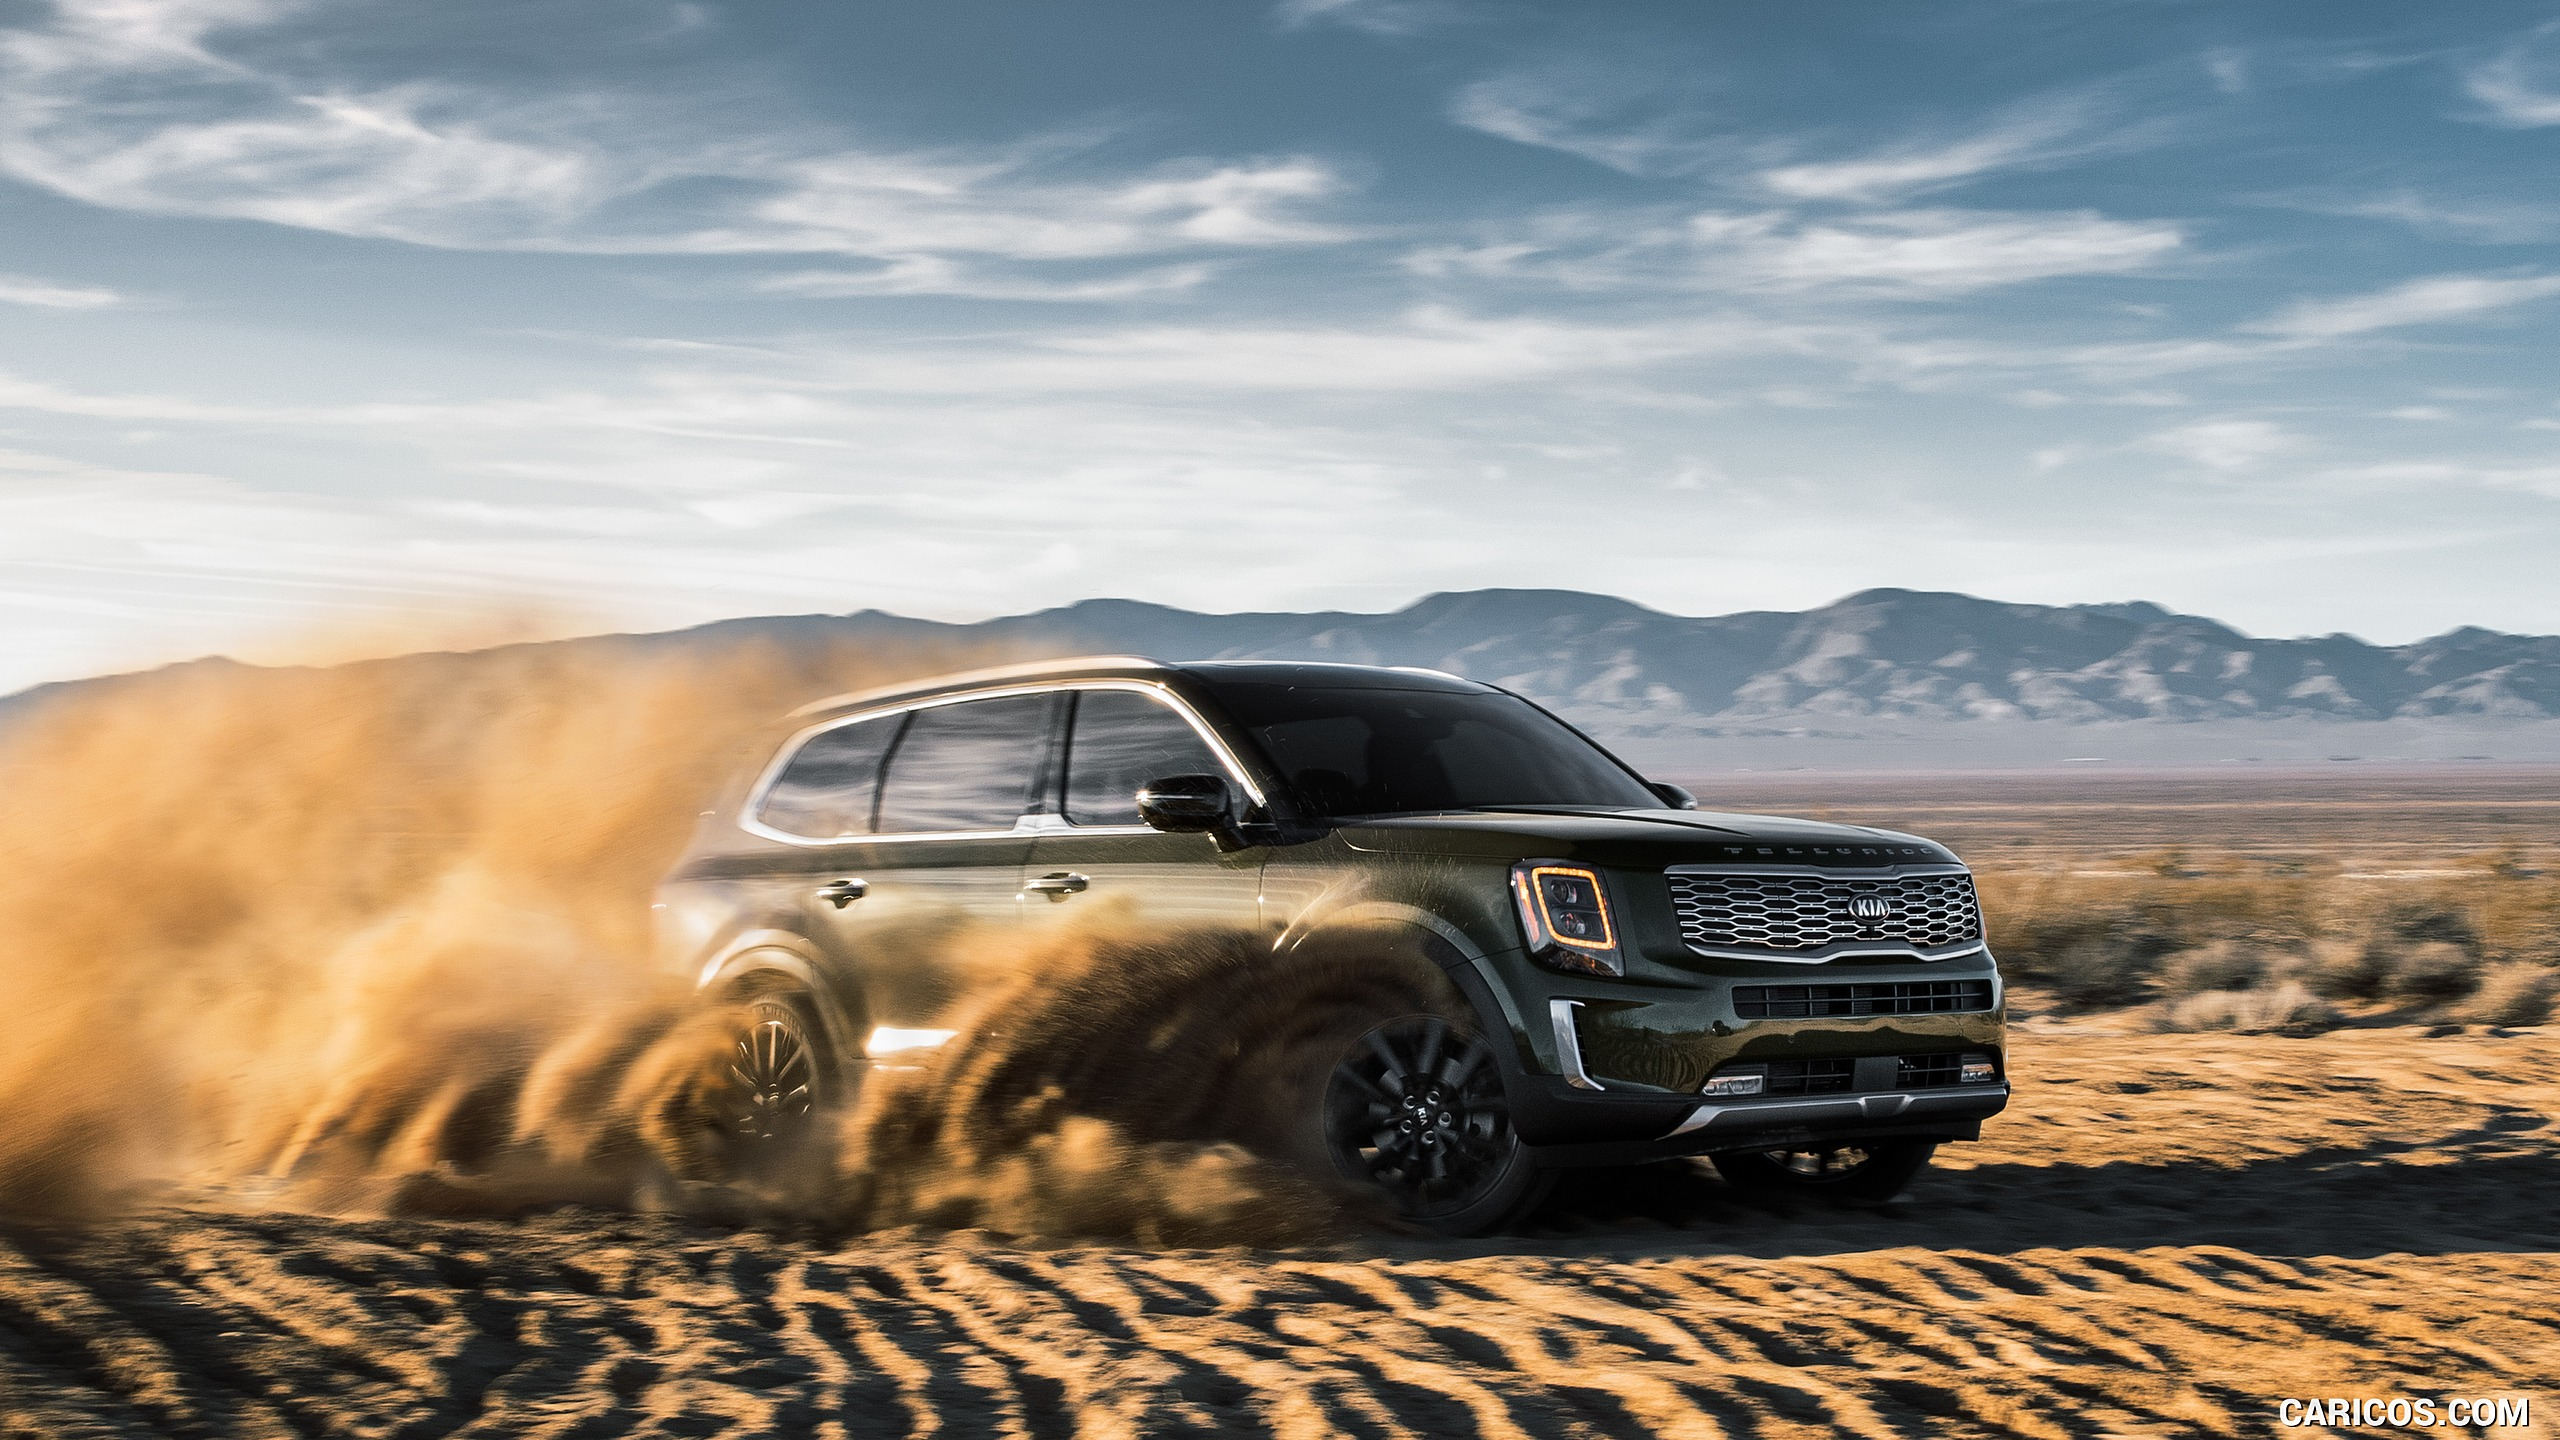 2020 Kia Telluride   Front Three Quarter HD Wallpaper 5 2560x1440